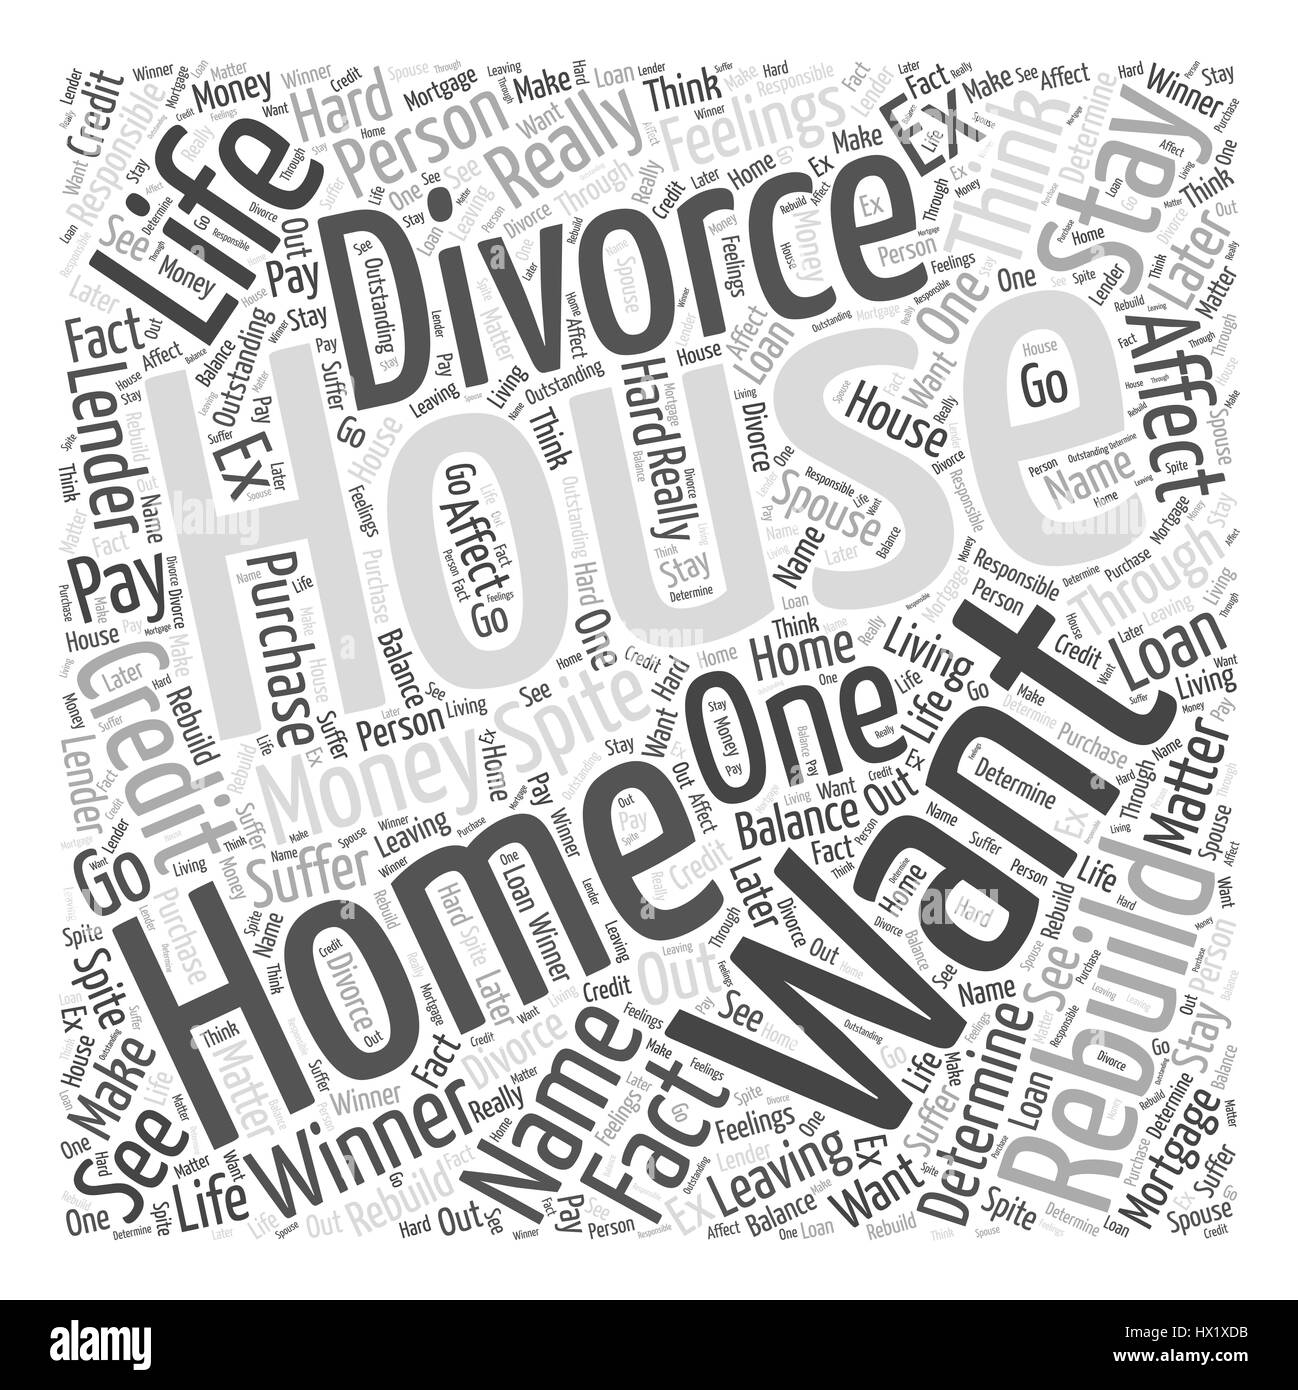 about the house in your name Word Cloud Concept Stock Vector